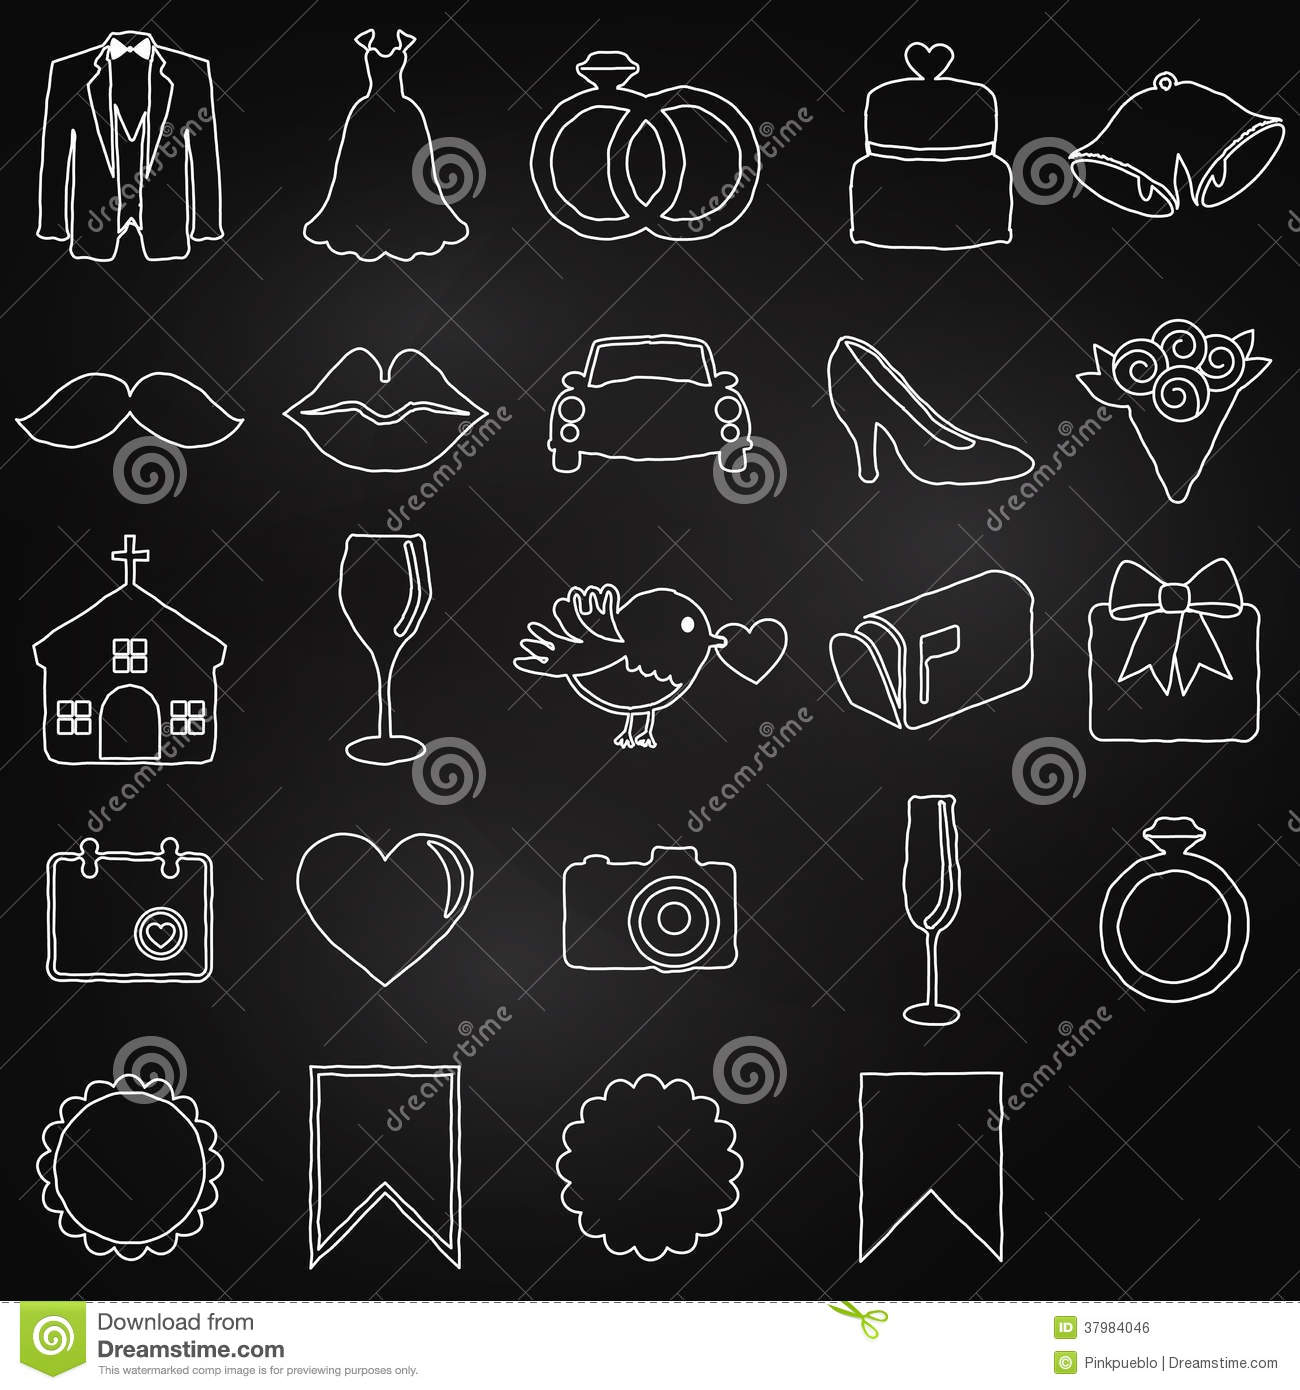 Vector Collection Of Chalkboard Wedding Doodles Royalty